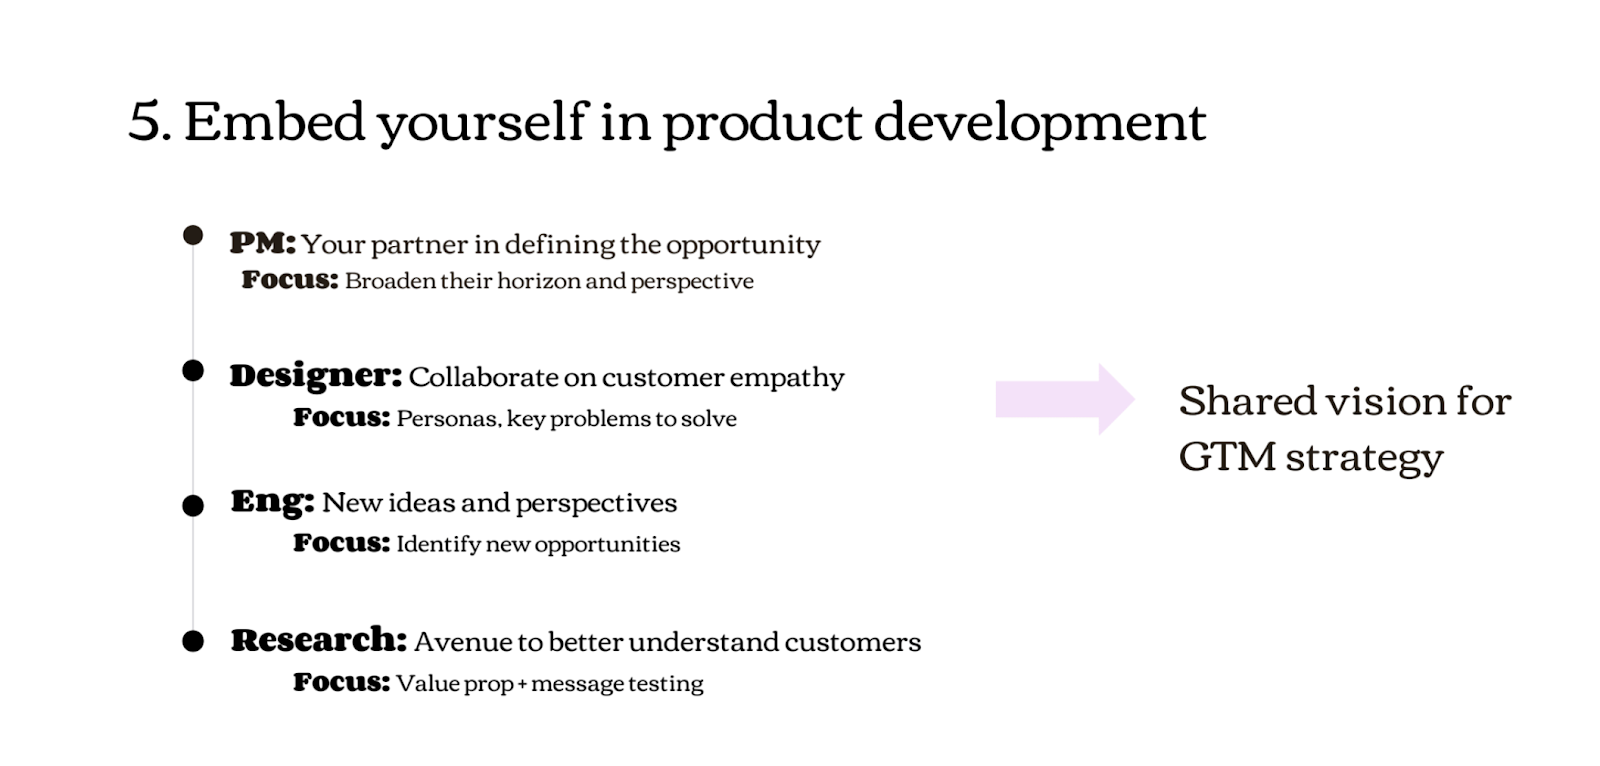 Product marketers need to embed themselves in product development